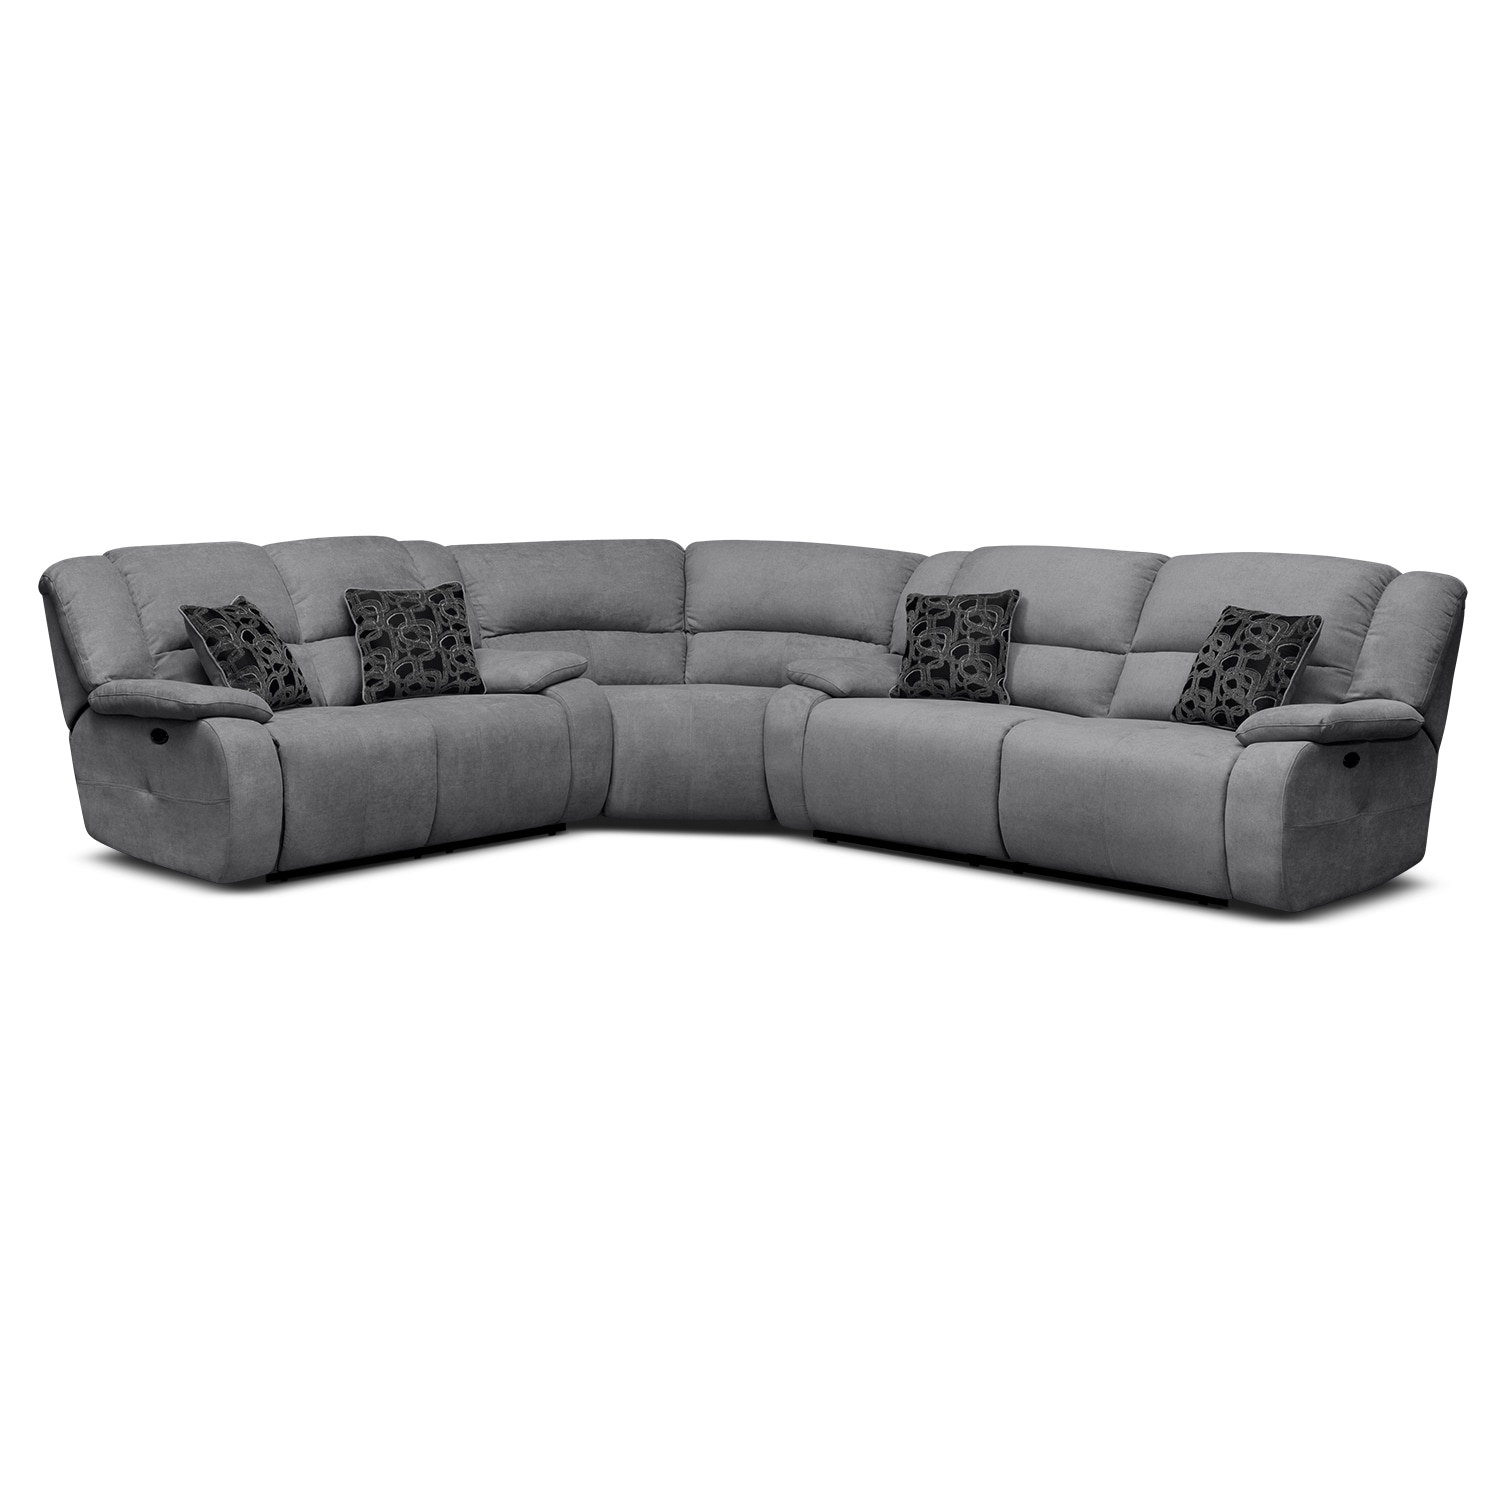 Destin Gray Ii Upholstery 3 Pc Power Reclining Sectional